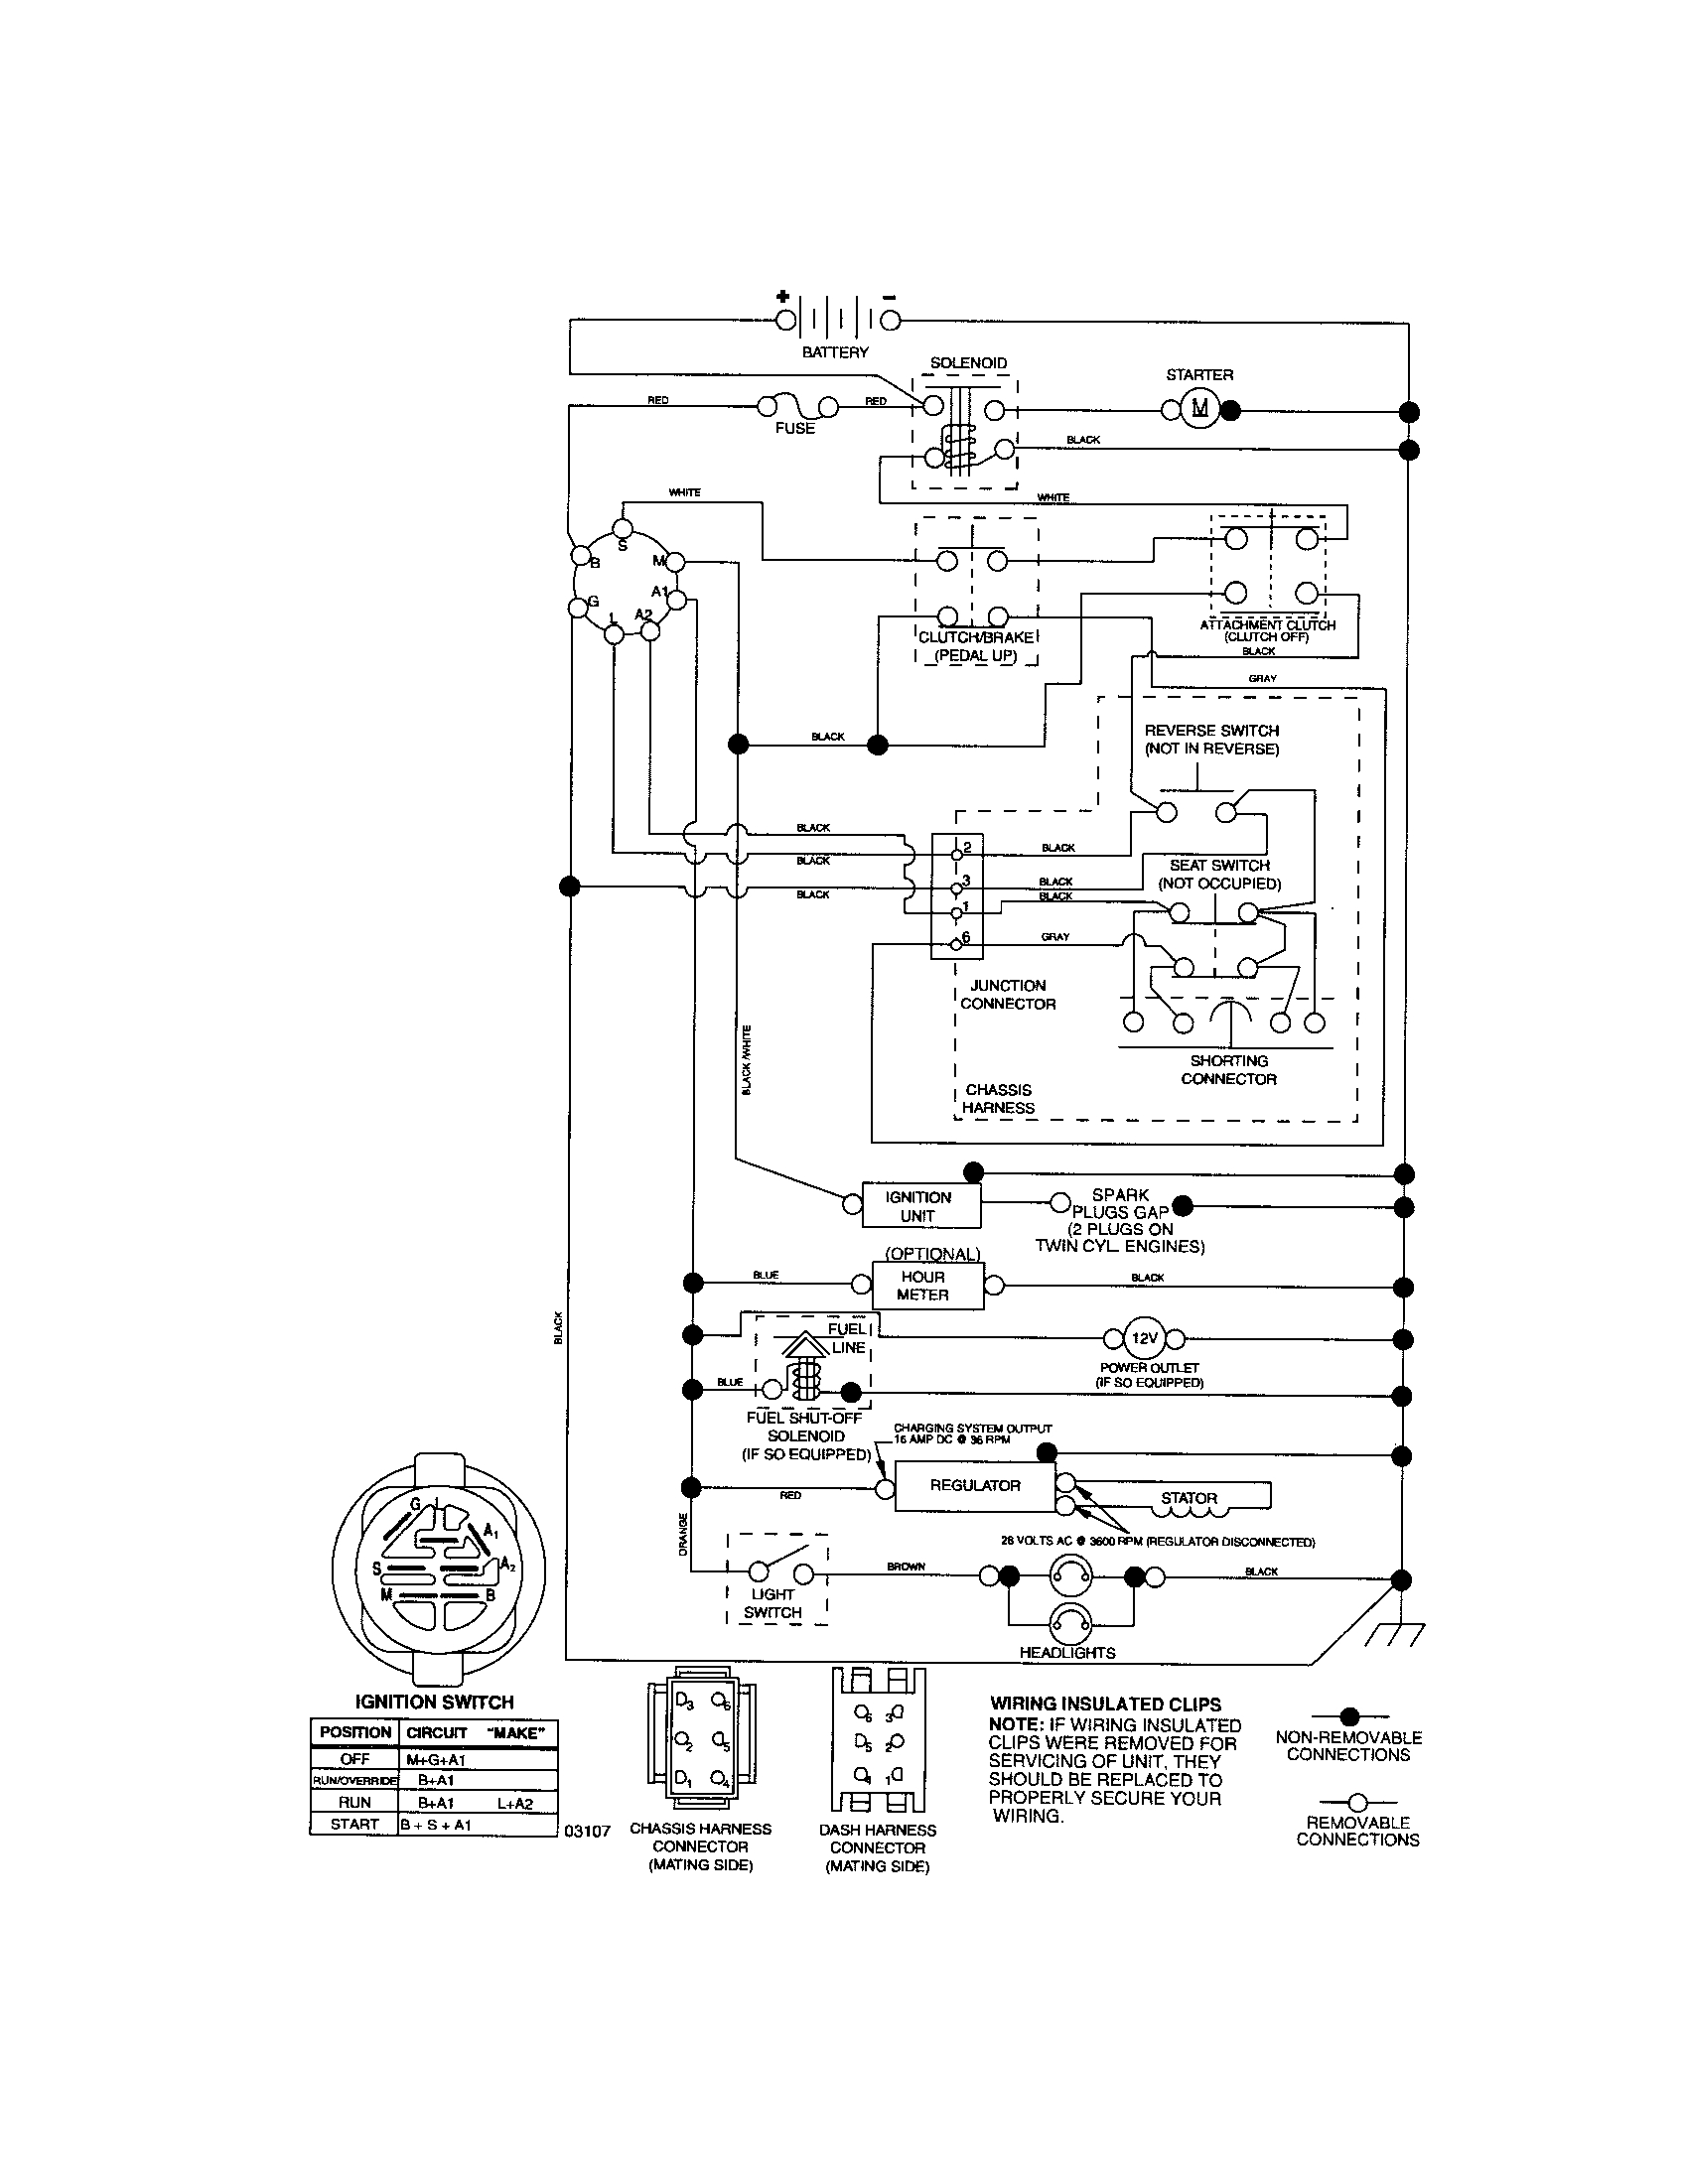 Craftsman Riding Mower Electrical Diagram | Wiring Diagram Craftsman - Riding Lawn Mower Wiring Diagram